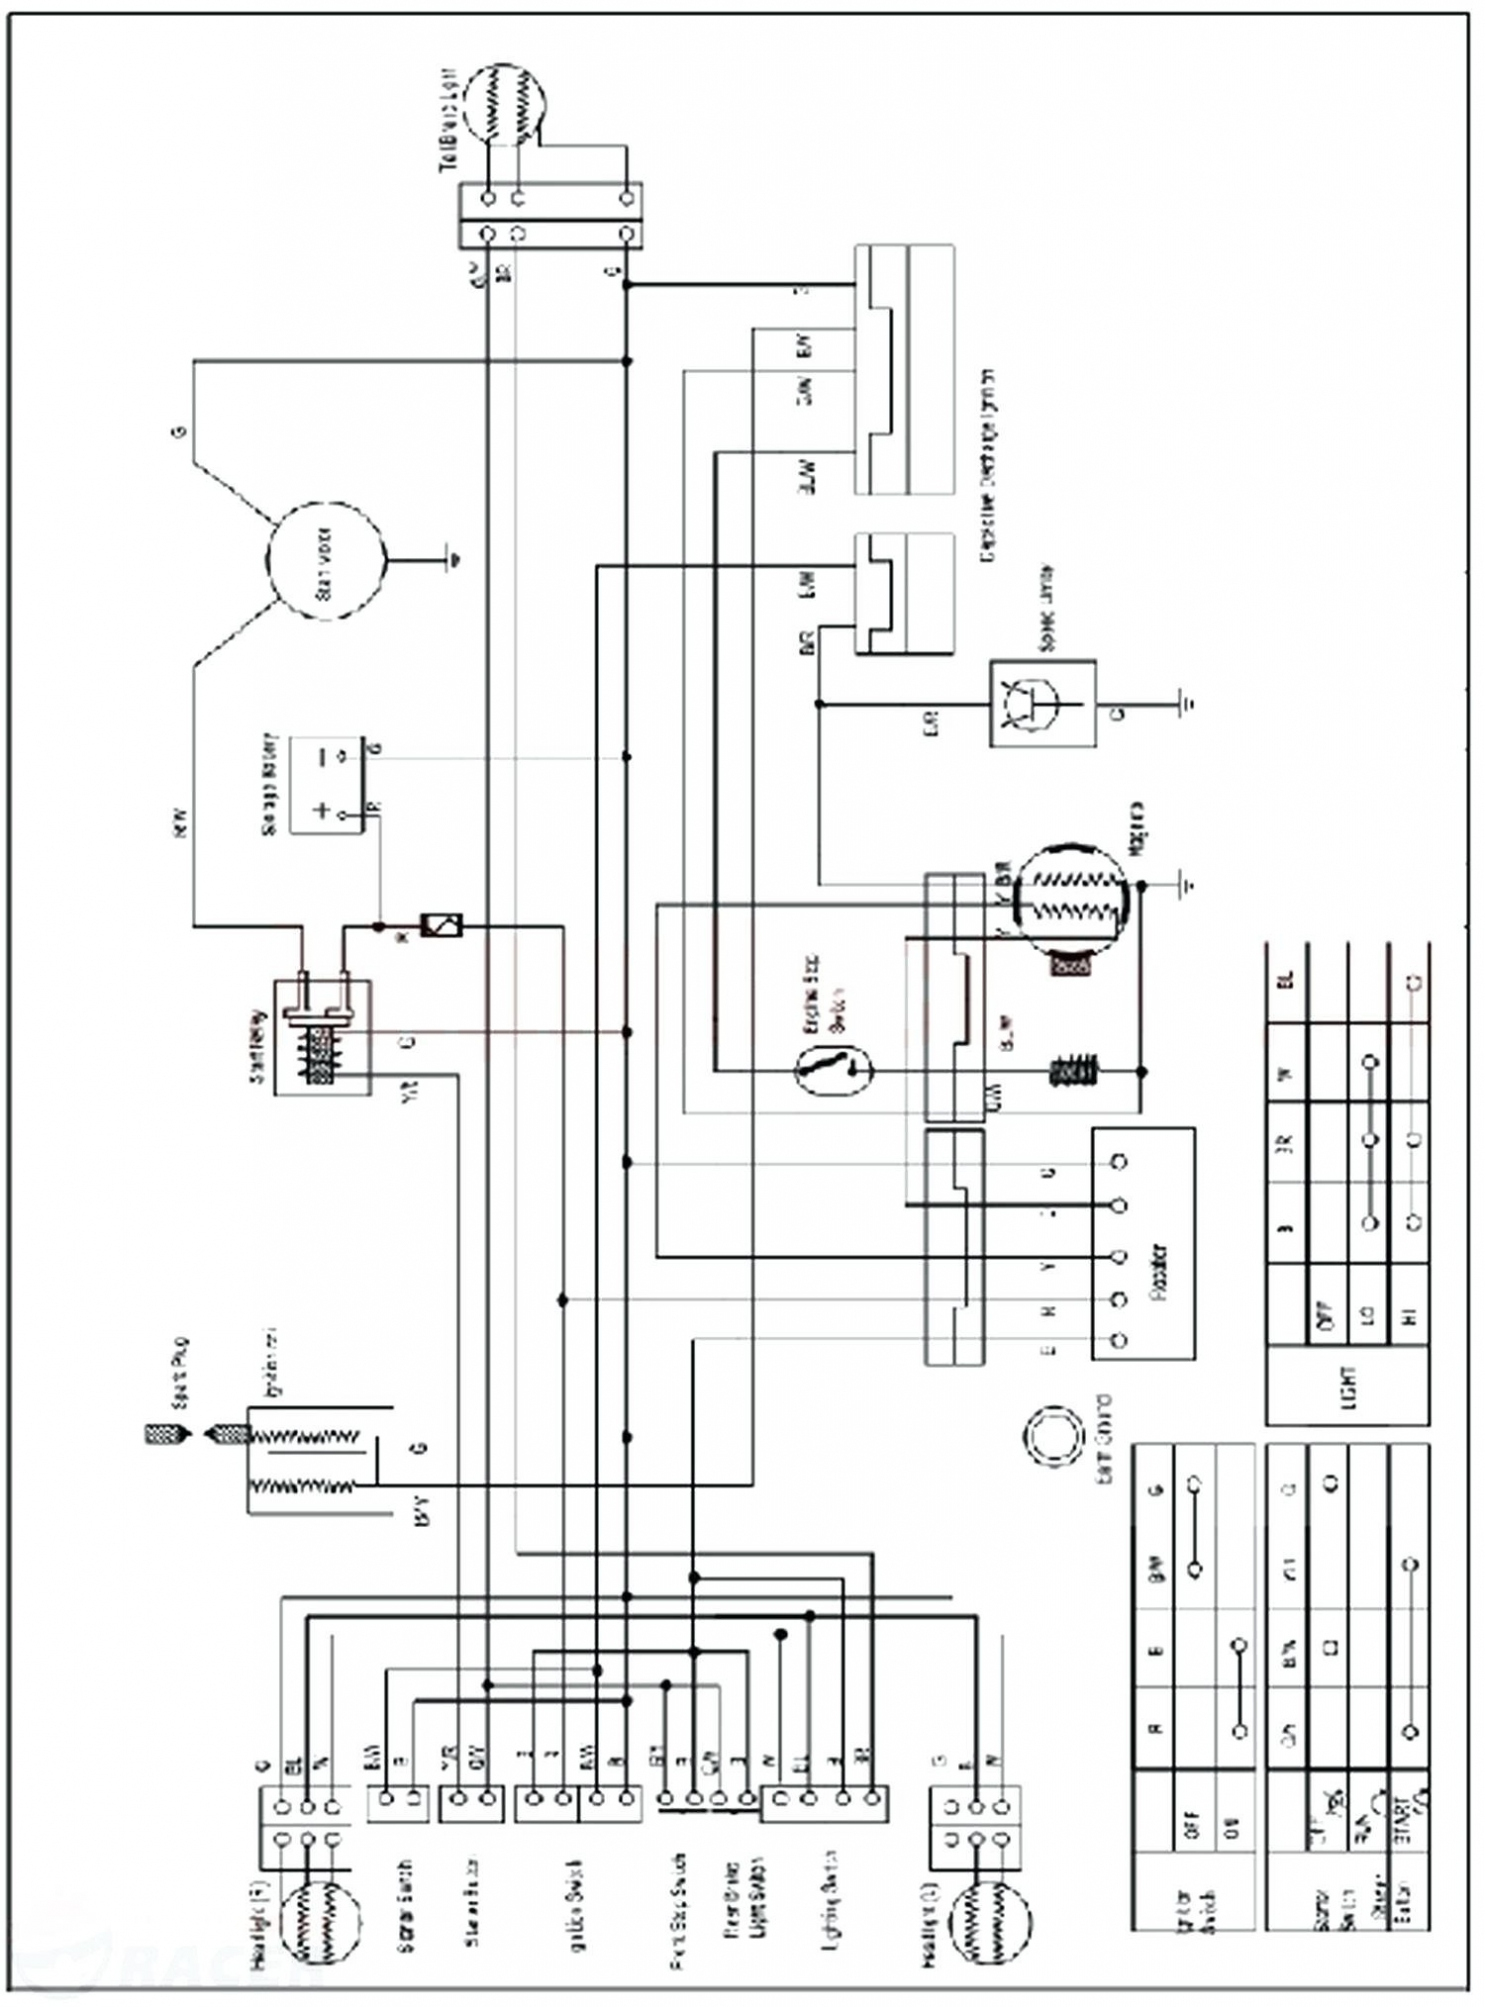 125Cc Taotao Atv Wiring Diagram | Schematic Diagram - Chinese Atv Wiring Diagram 50Cc